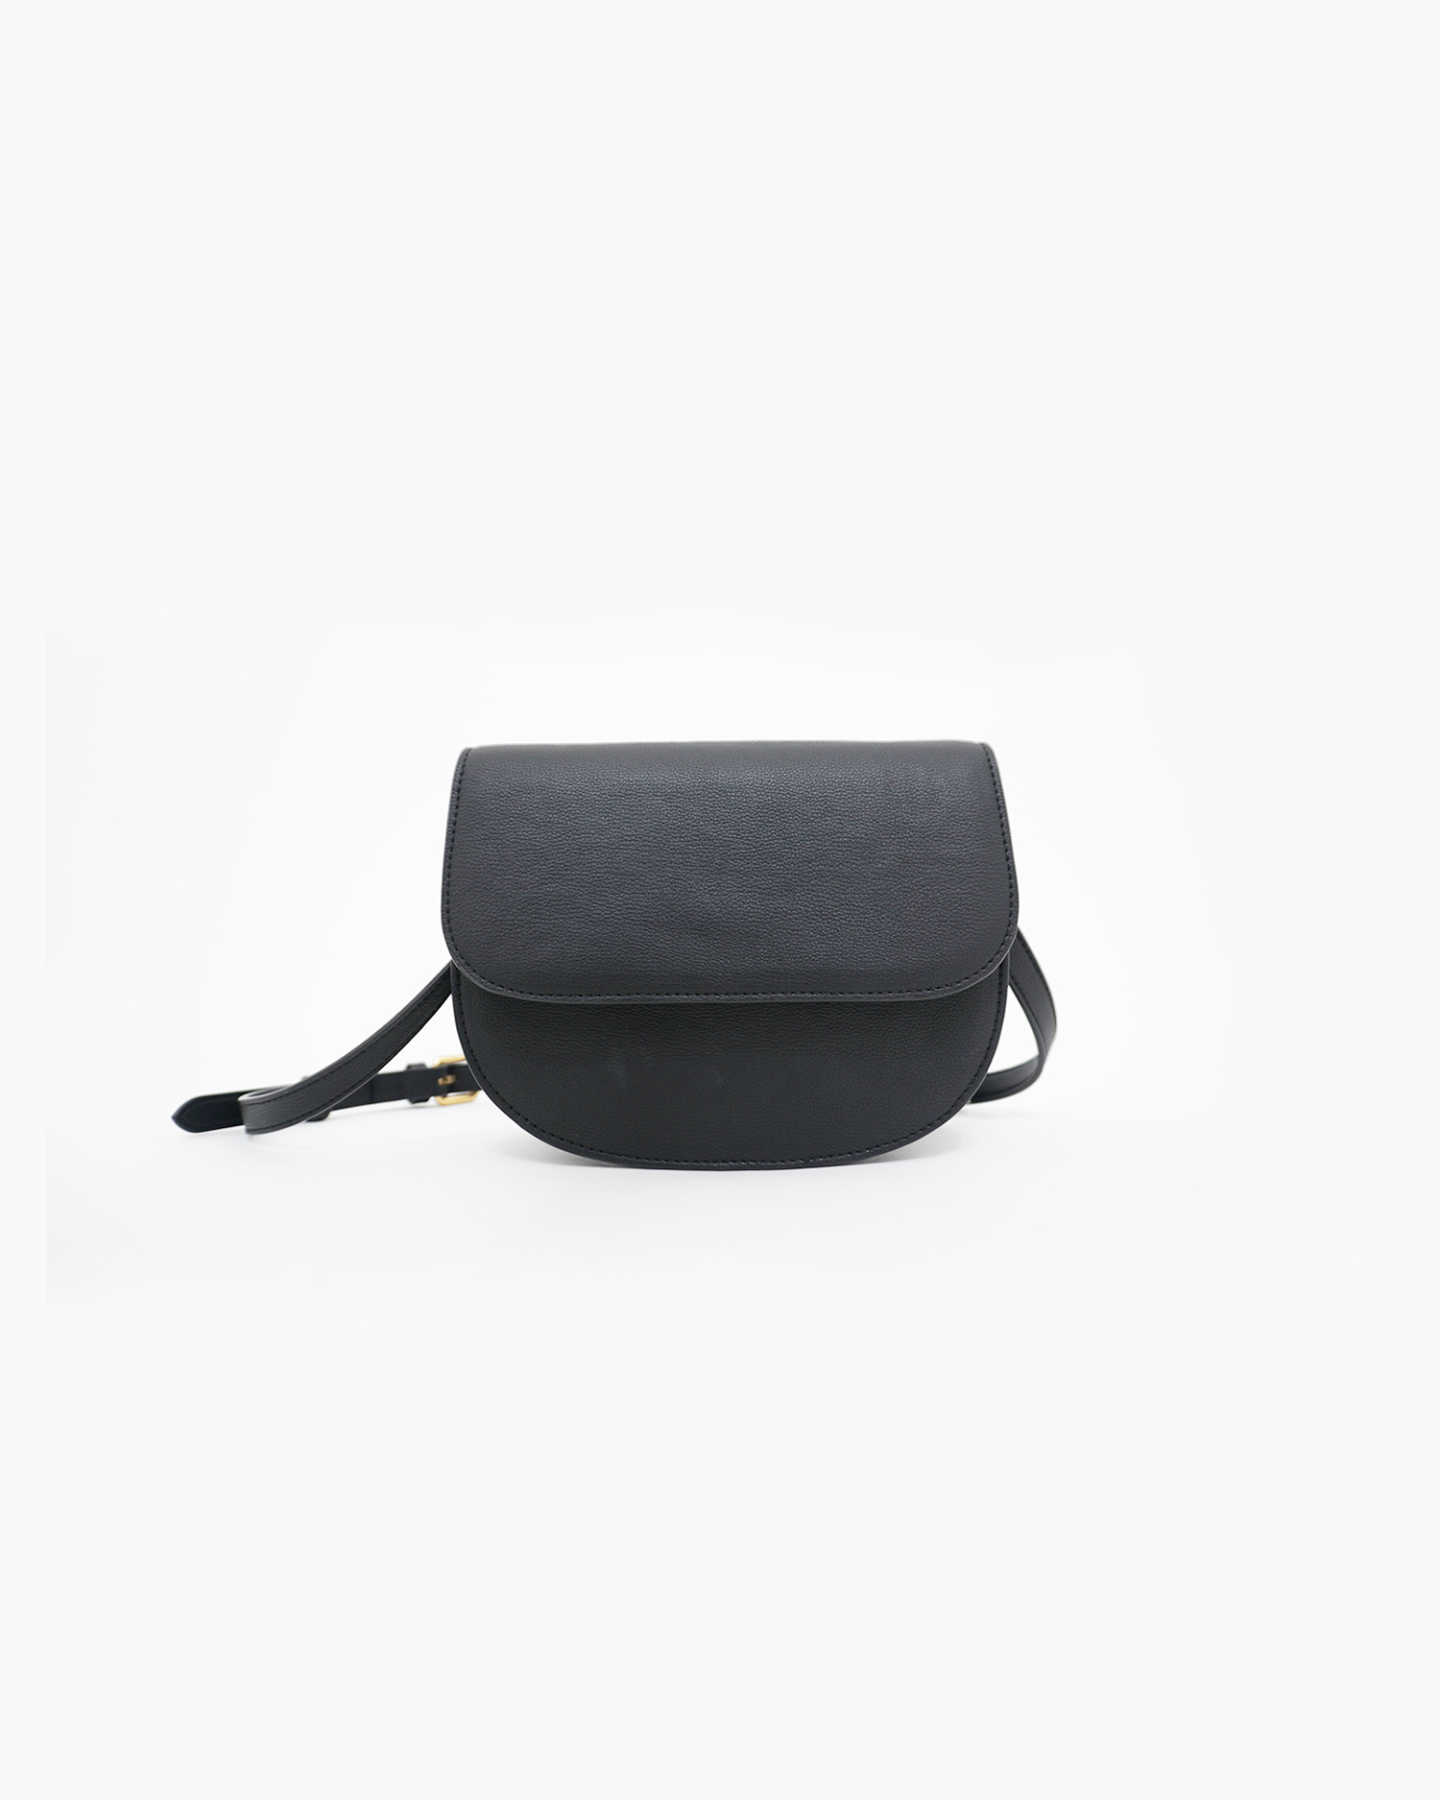 Vegan Saddle Bag - Black - 9